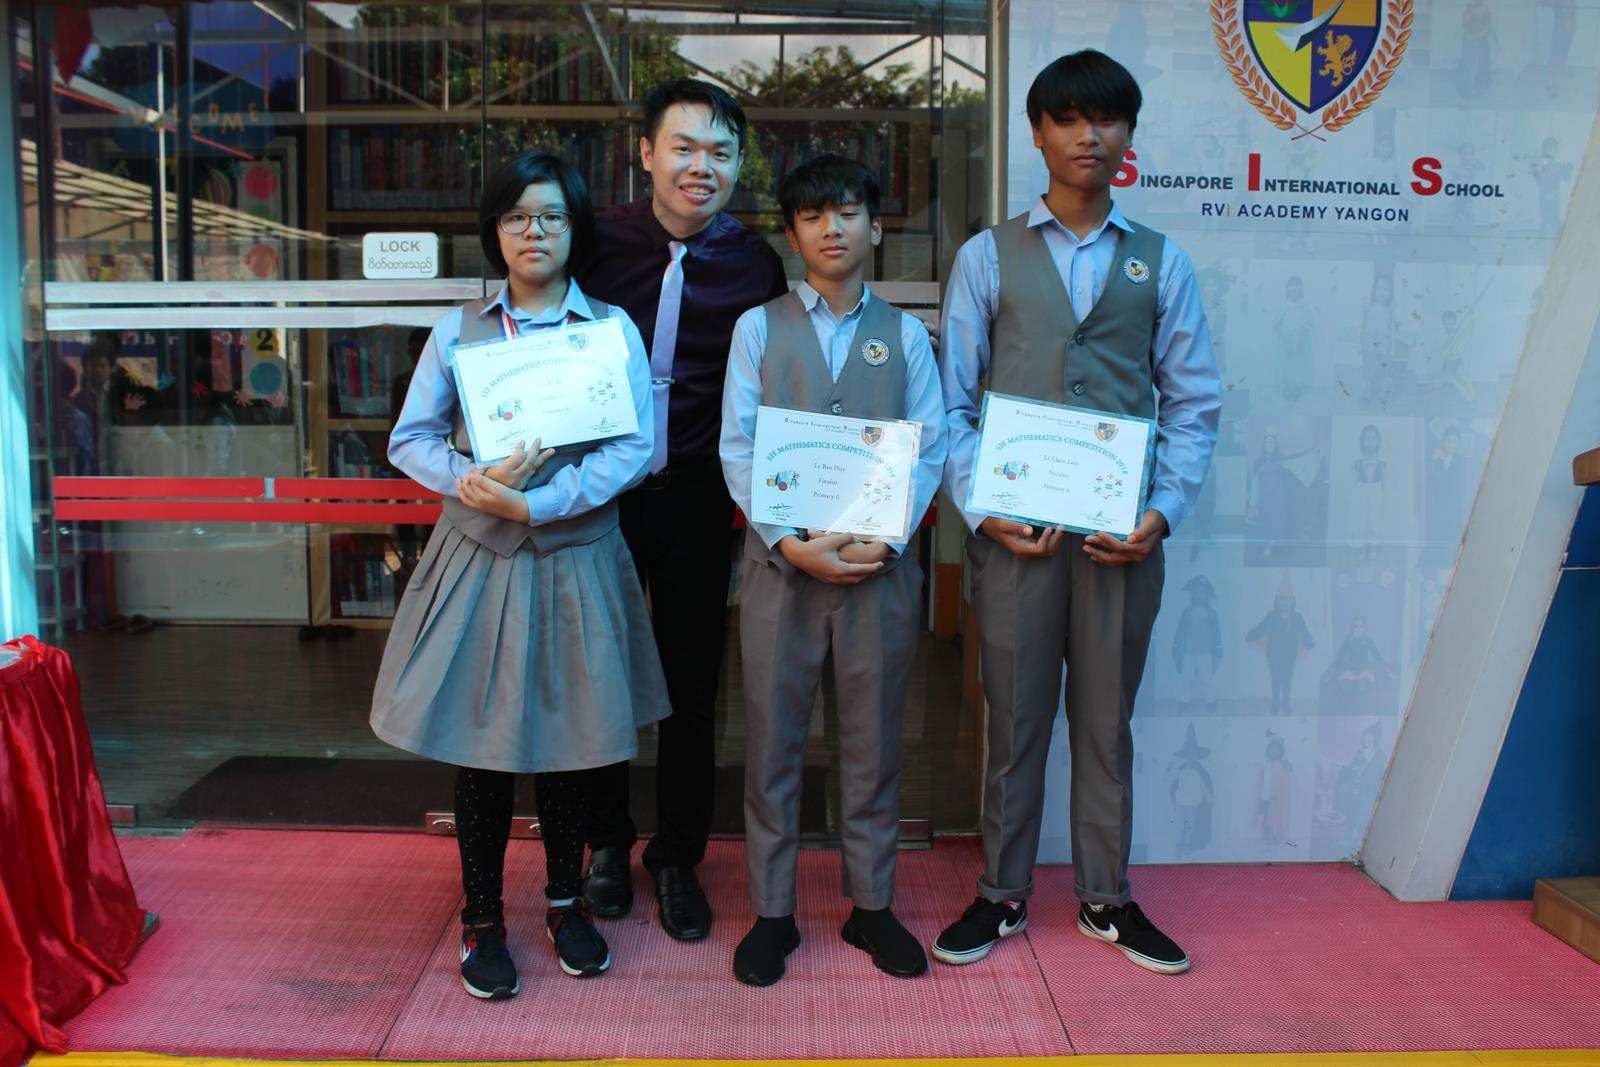 Presentation of Awards for SIS Mathematics Competition (15 Oct)